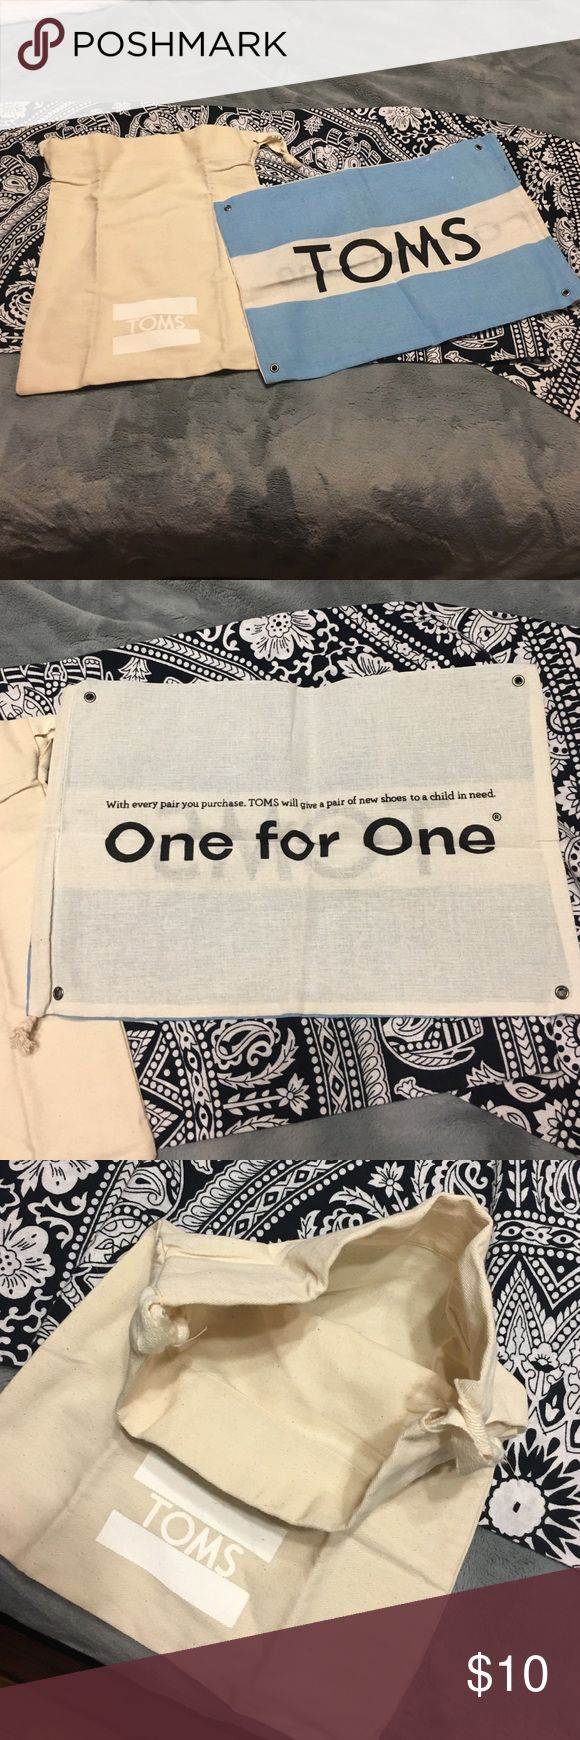 TOMS BAG SACKS By questions please feel free to ask TOMS Bags Totes